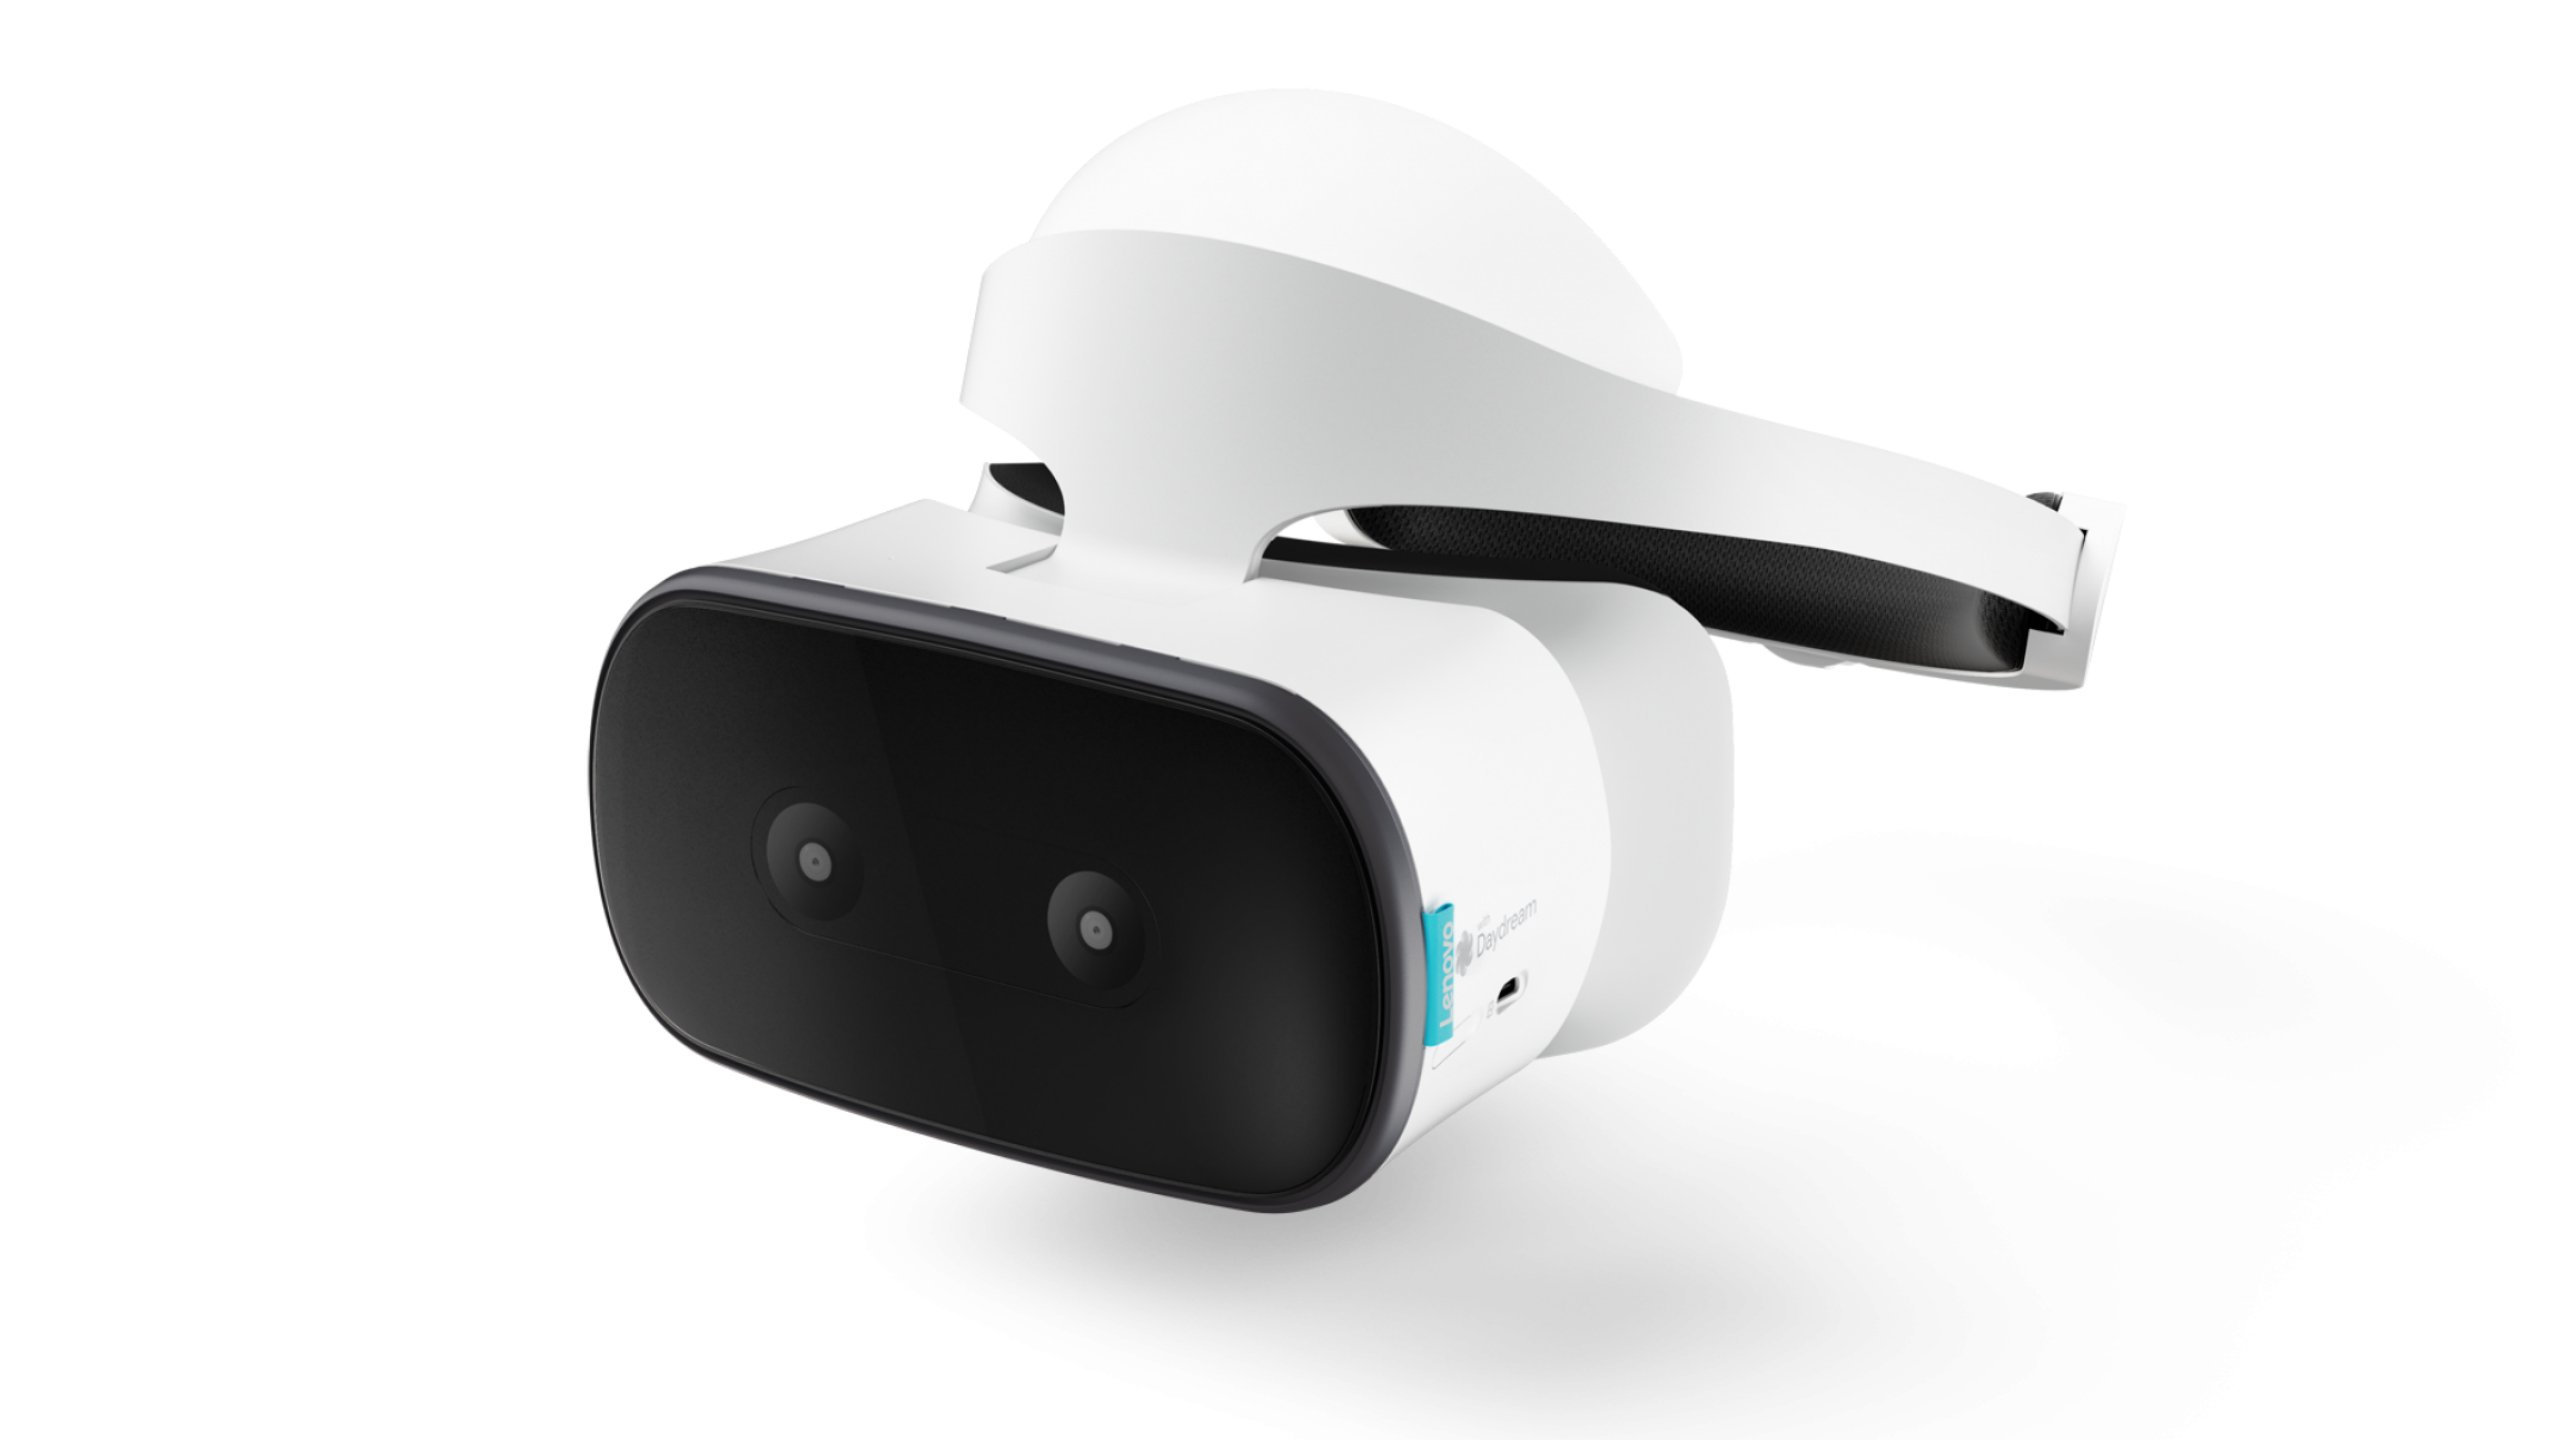 Gafas de realidad virtual Snapdragon™ 835 64 GB ANDROID Blanco